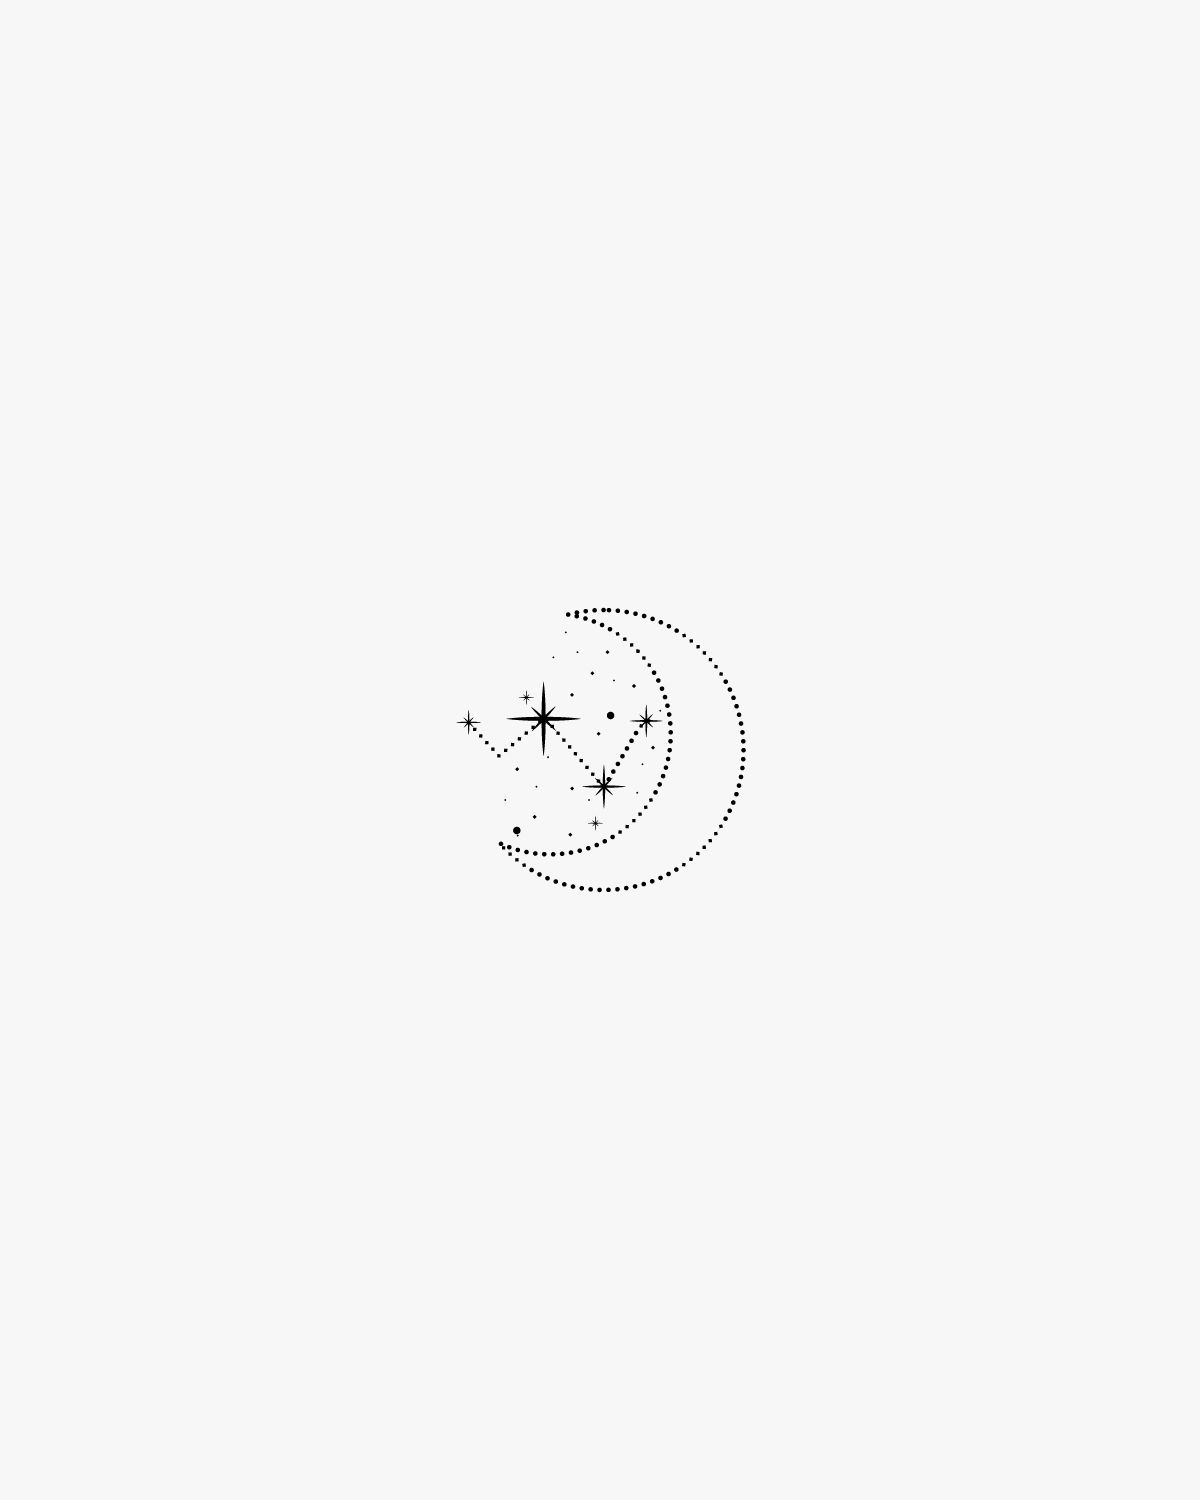 Small Moon Tattoo Design Minimal Art Constellation Tattoo Simple Star Tattoo Outlined Tattoo Small Moon Tattoos Moon Tattoo Designs Star Tattoos